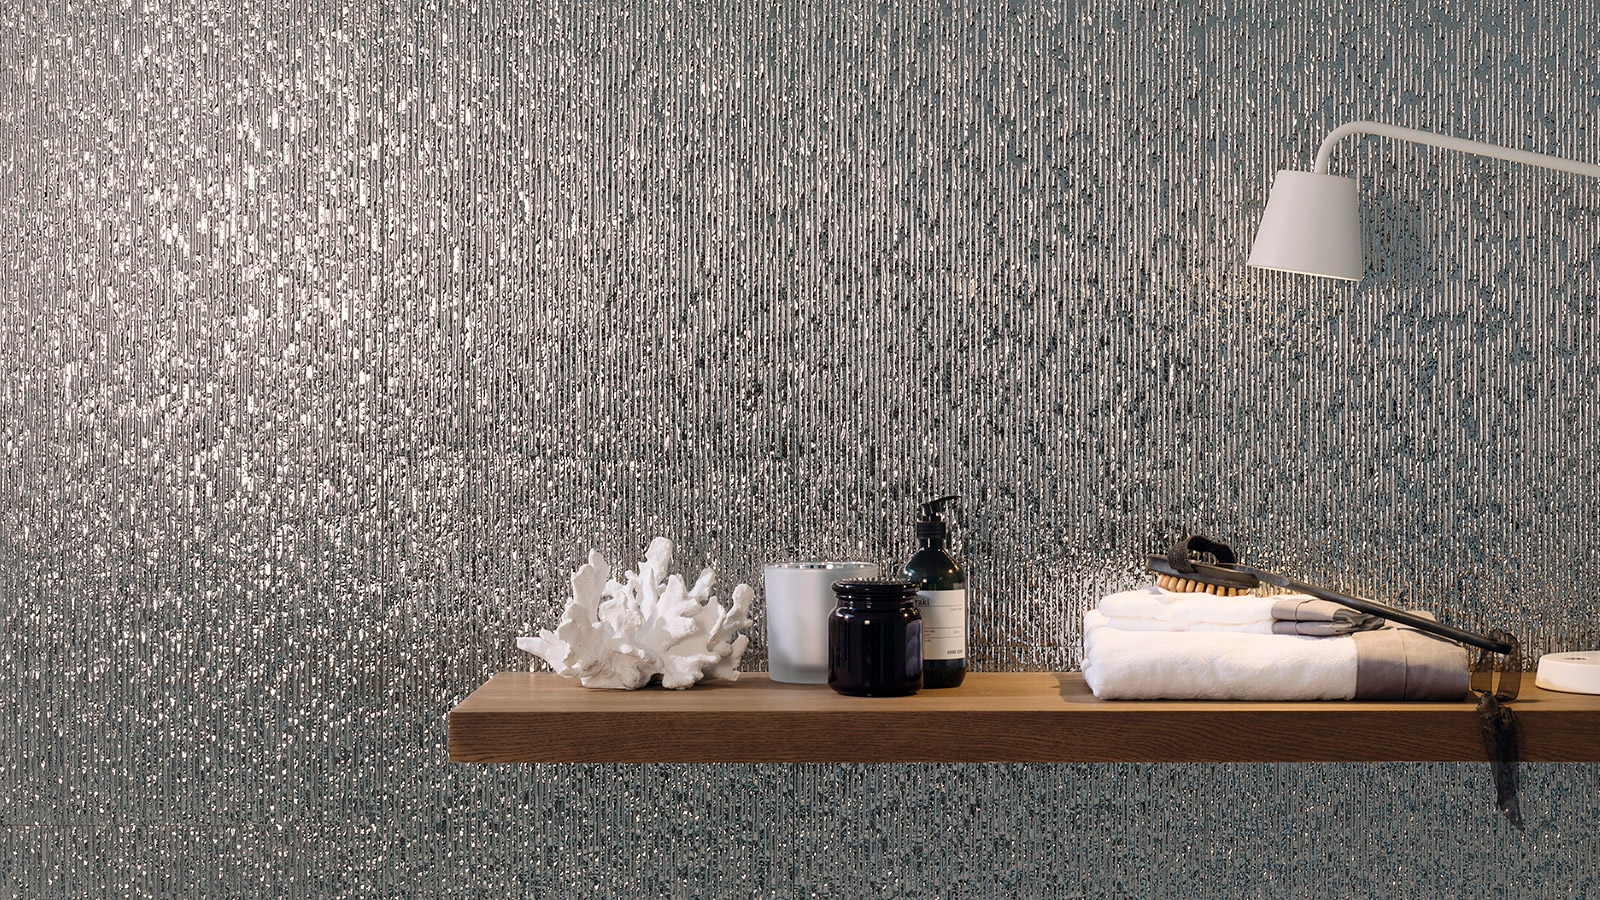 Metallic collections: Sculptural pieces with the Porcelanosa trademark